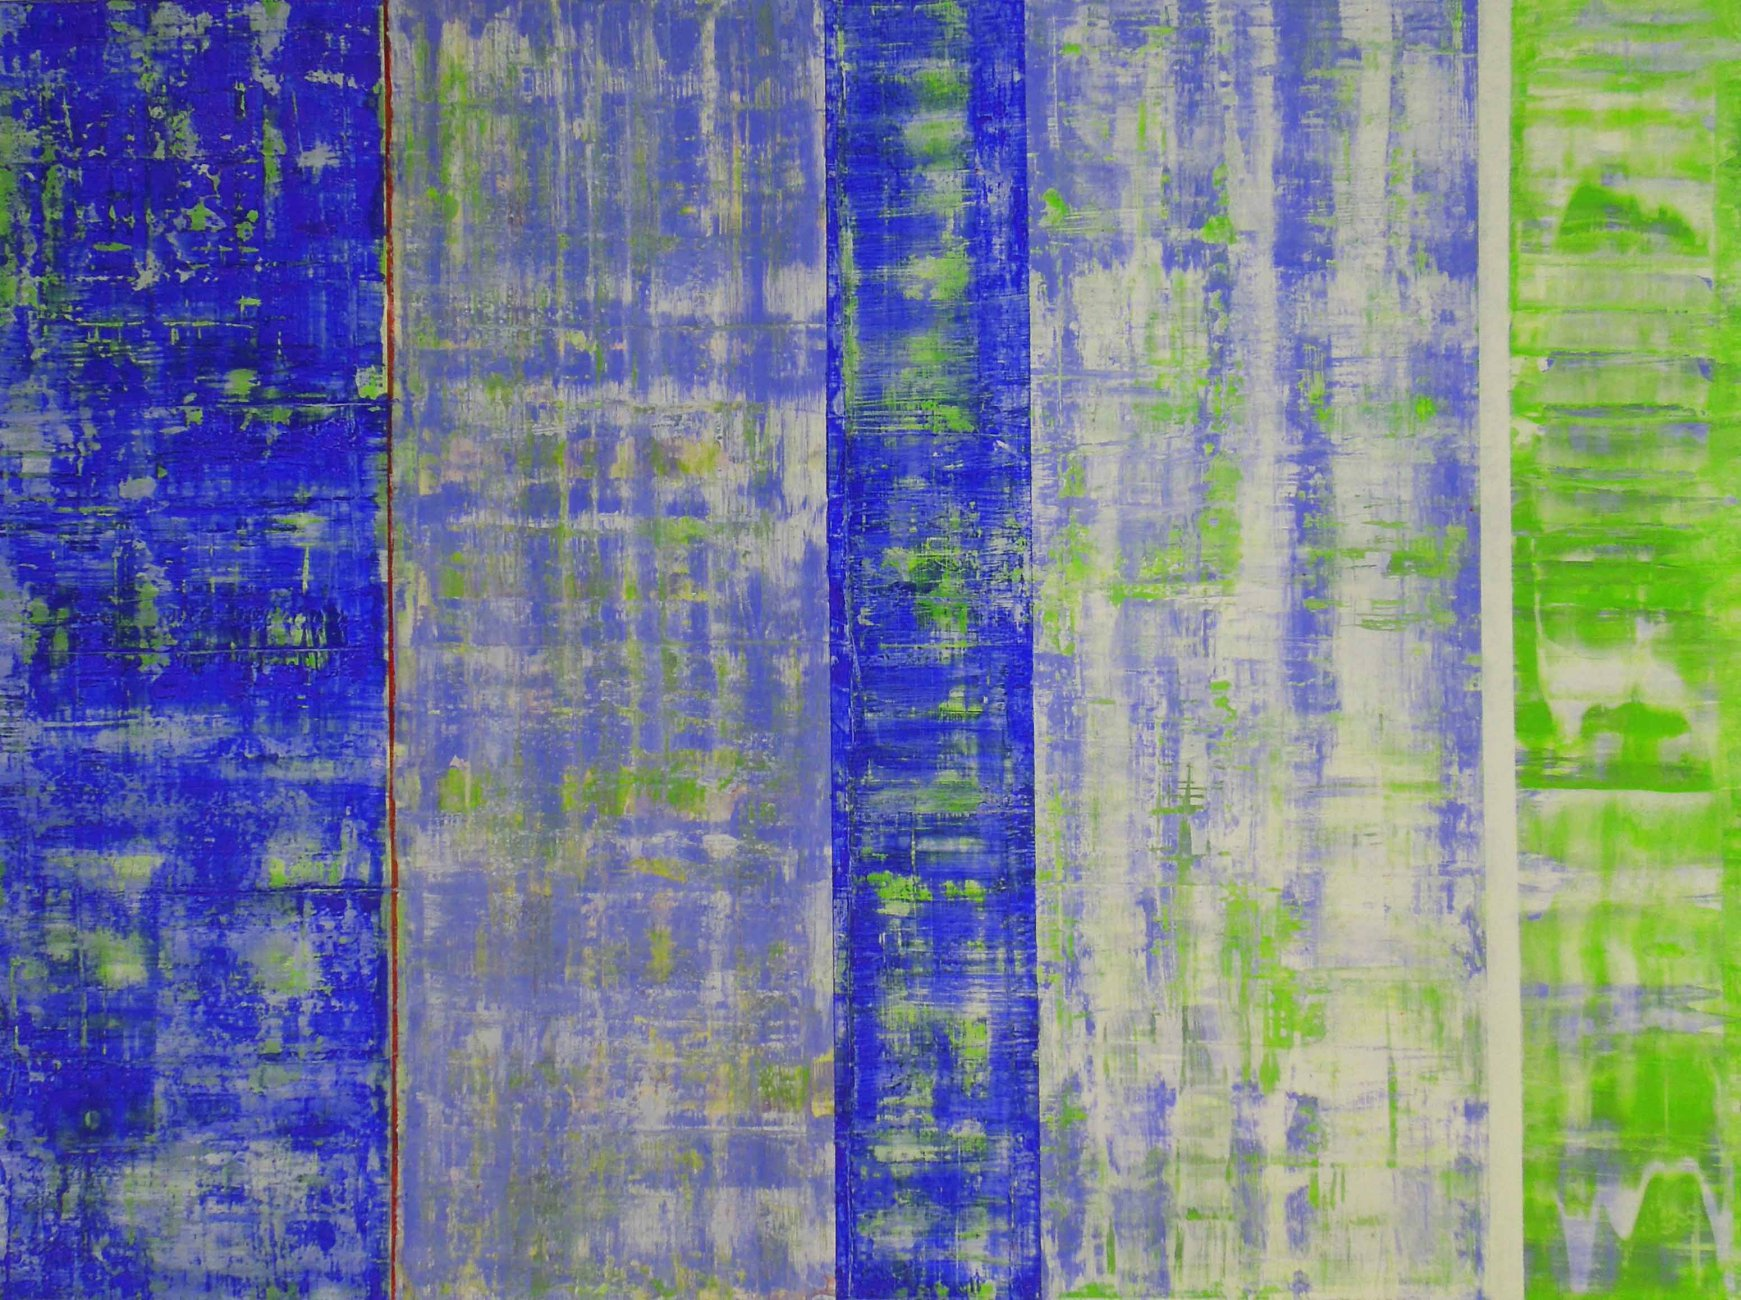 gerhard richter paintingPrana-40x30.jpg